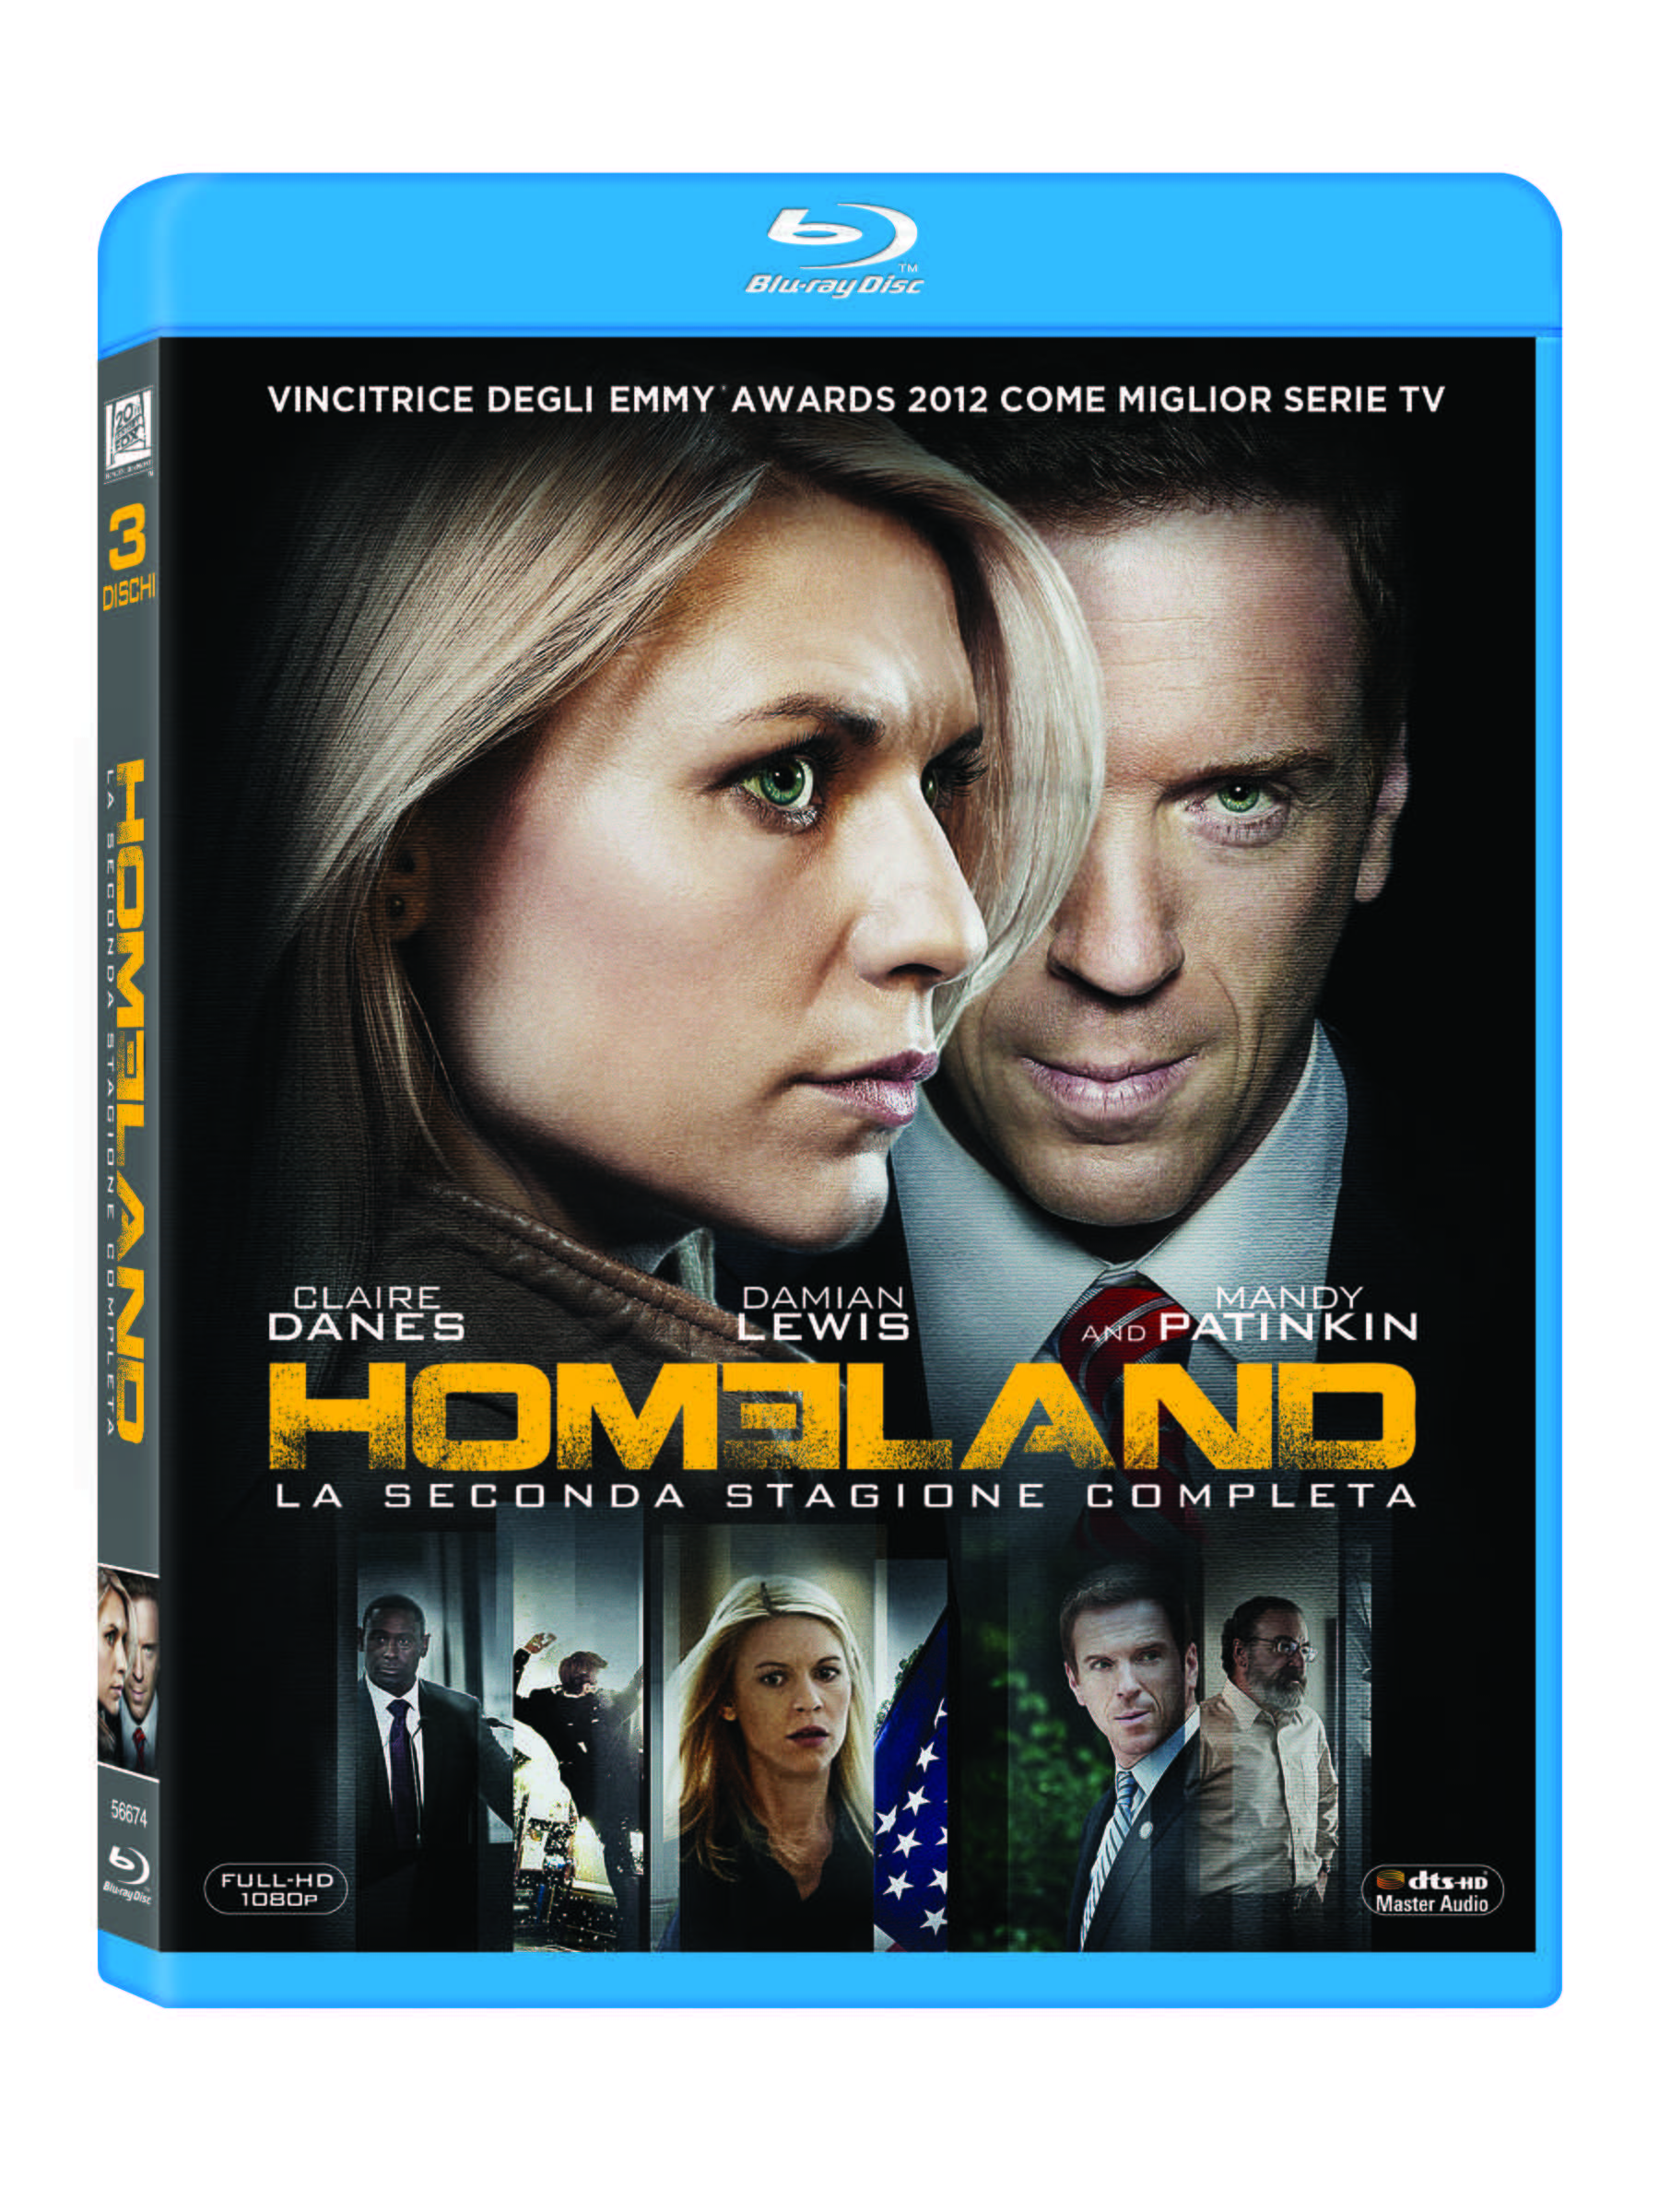 HOMELAND SEASON 2 (Blu-Ray)